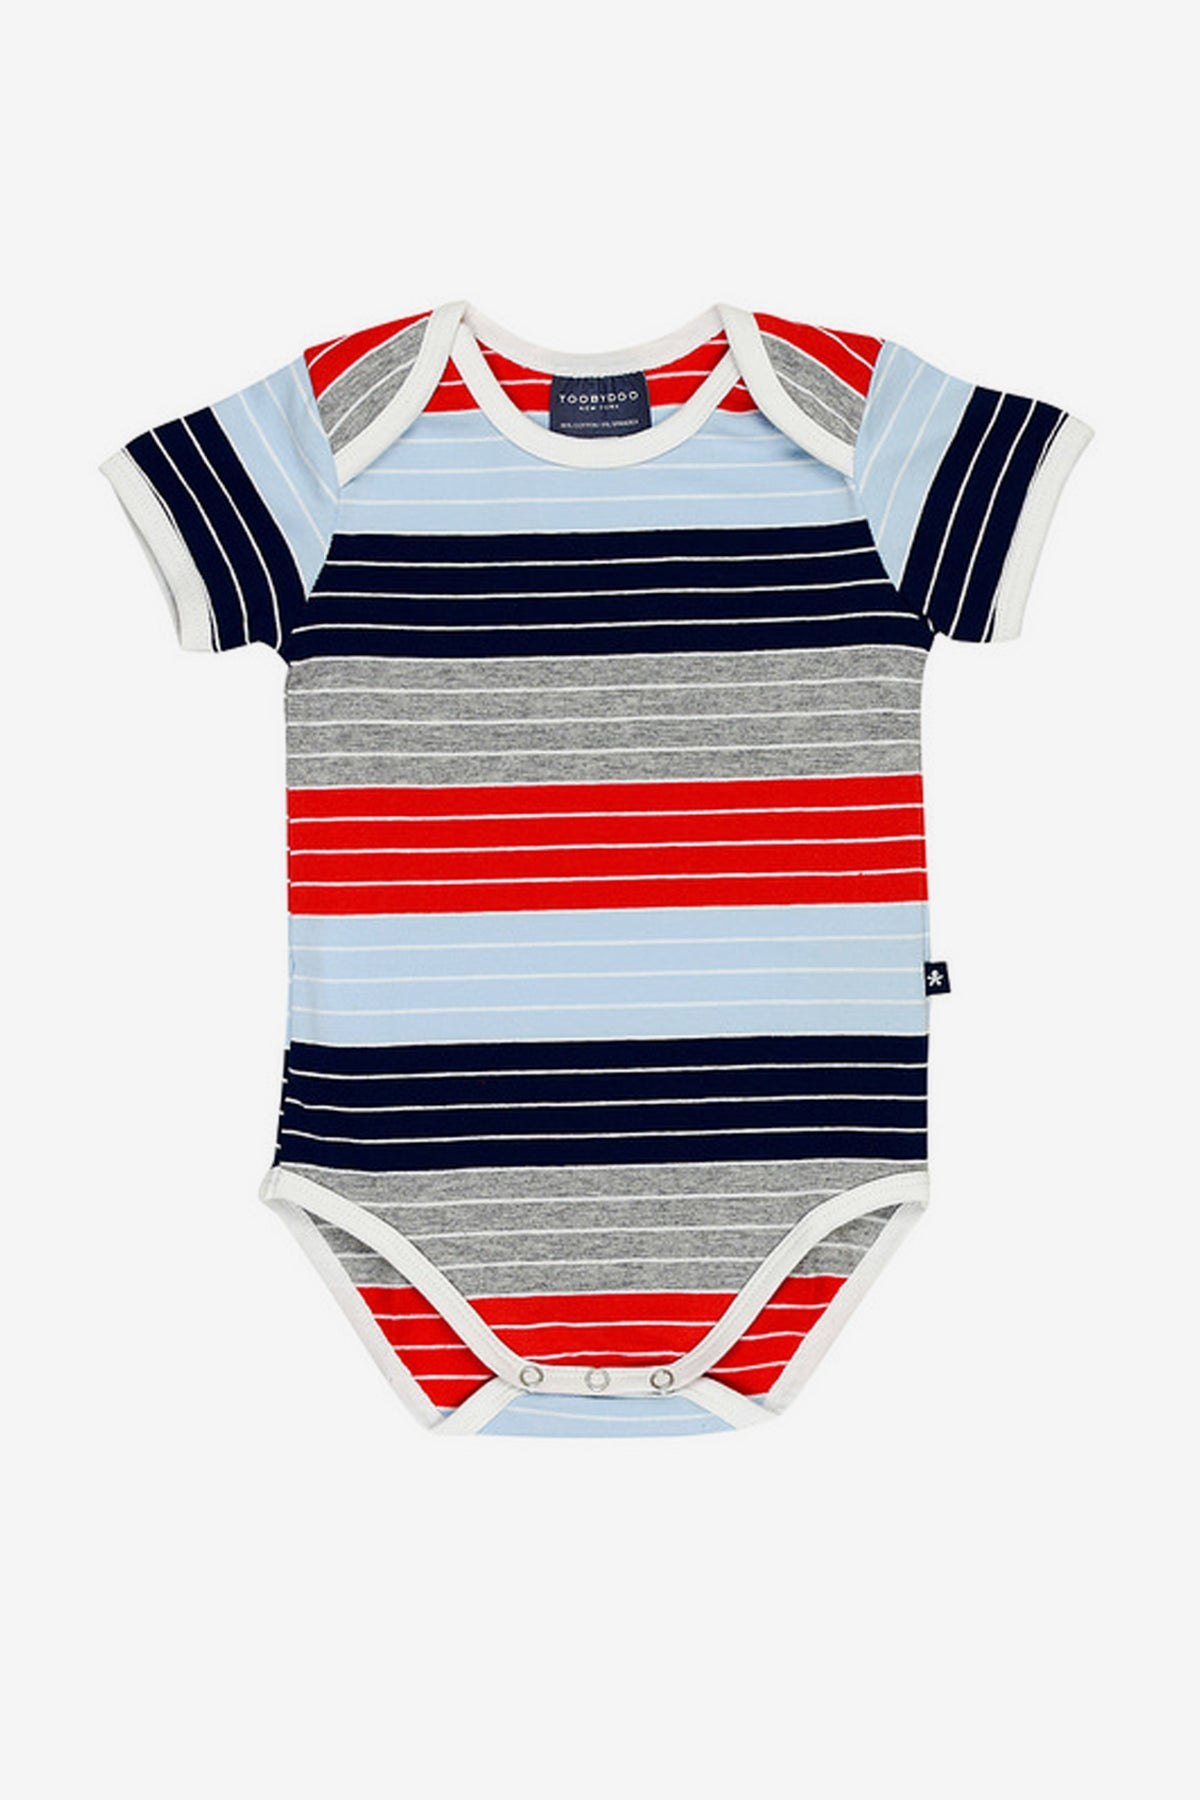 Toobydoo Red and Navy Striped Romper